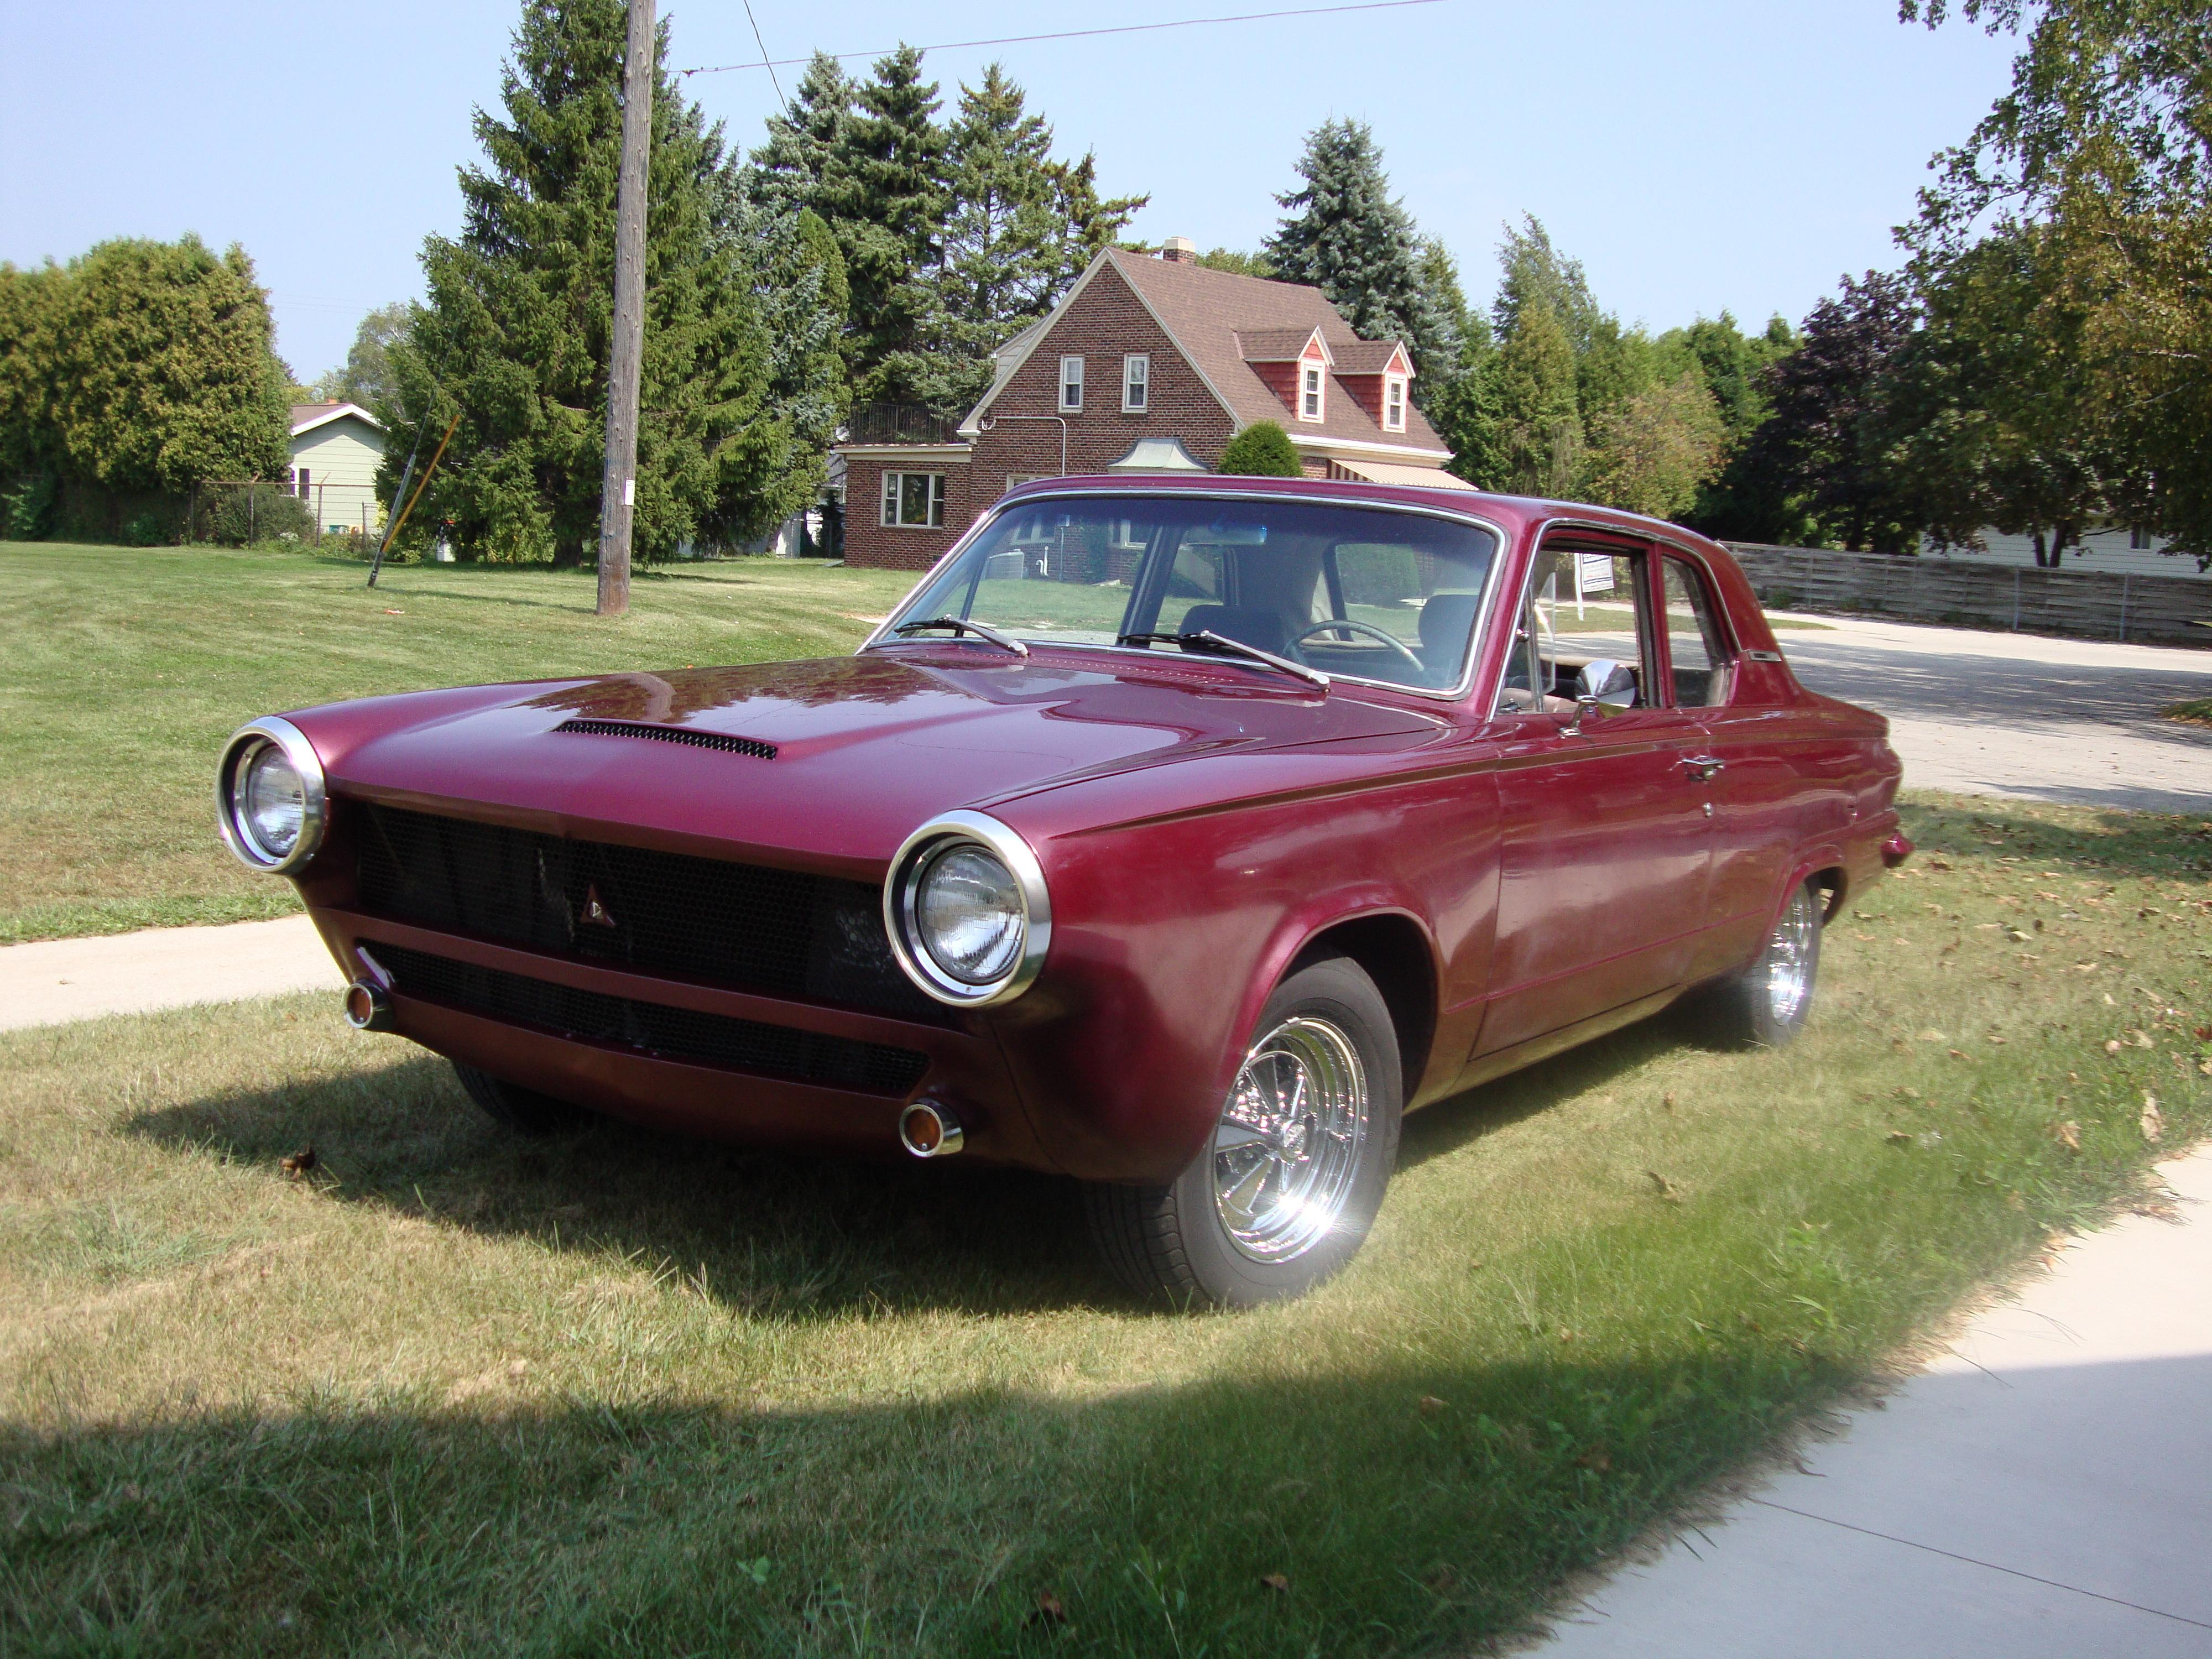 Ford Fusion Mods >> Deviant1963 1963 Dodge Dart Specs, Photos, Modification ...